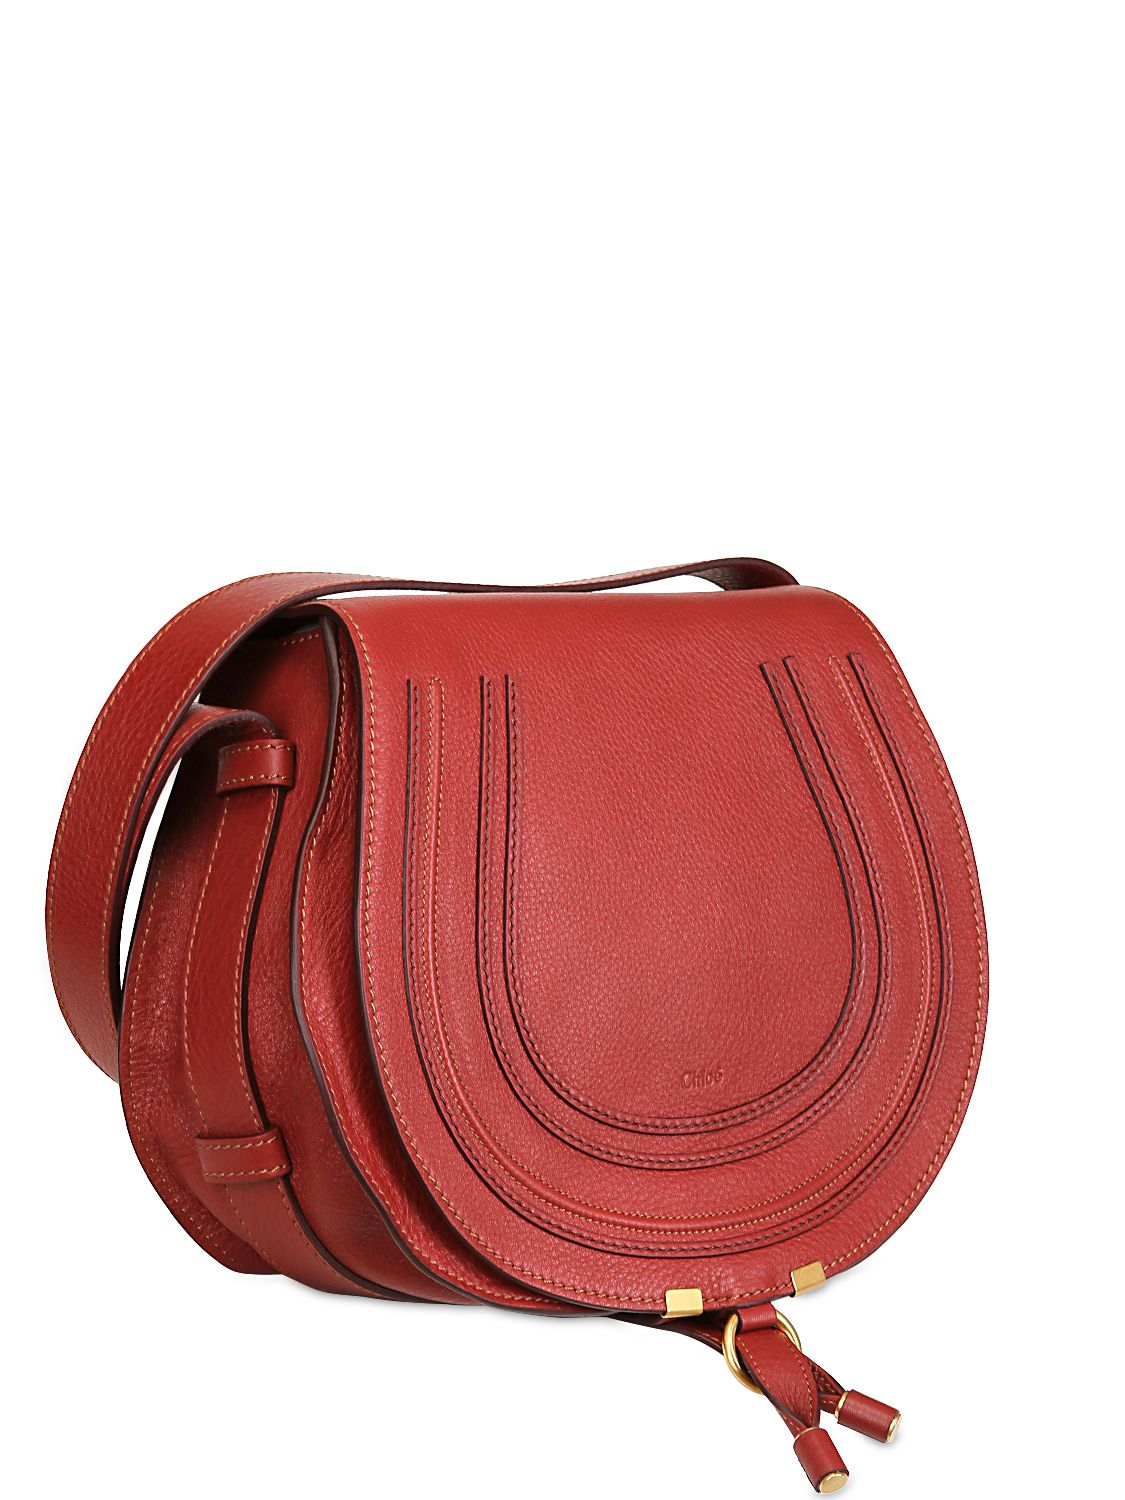 cf39c6cd0f Lyst - Chloé Medium Marcie Leather Crossbody Bag in Red